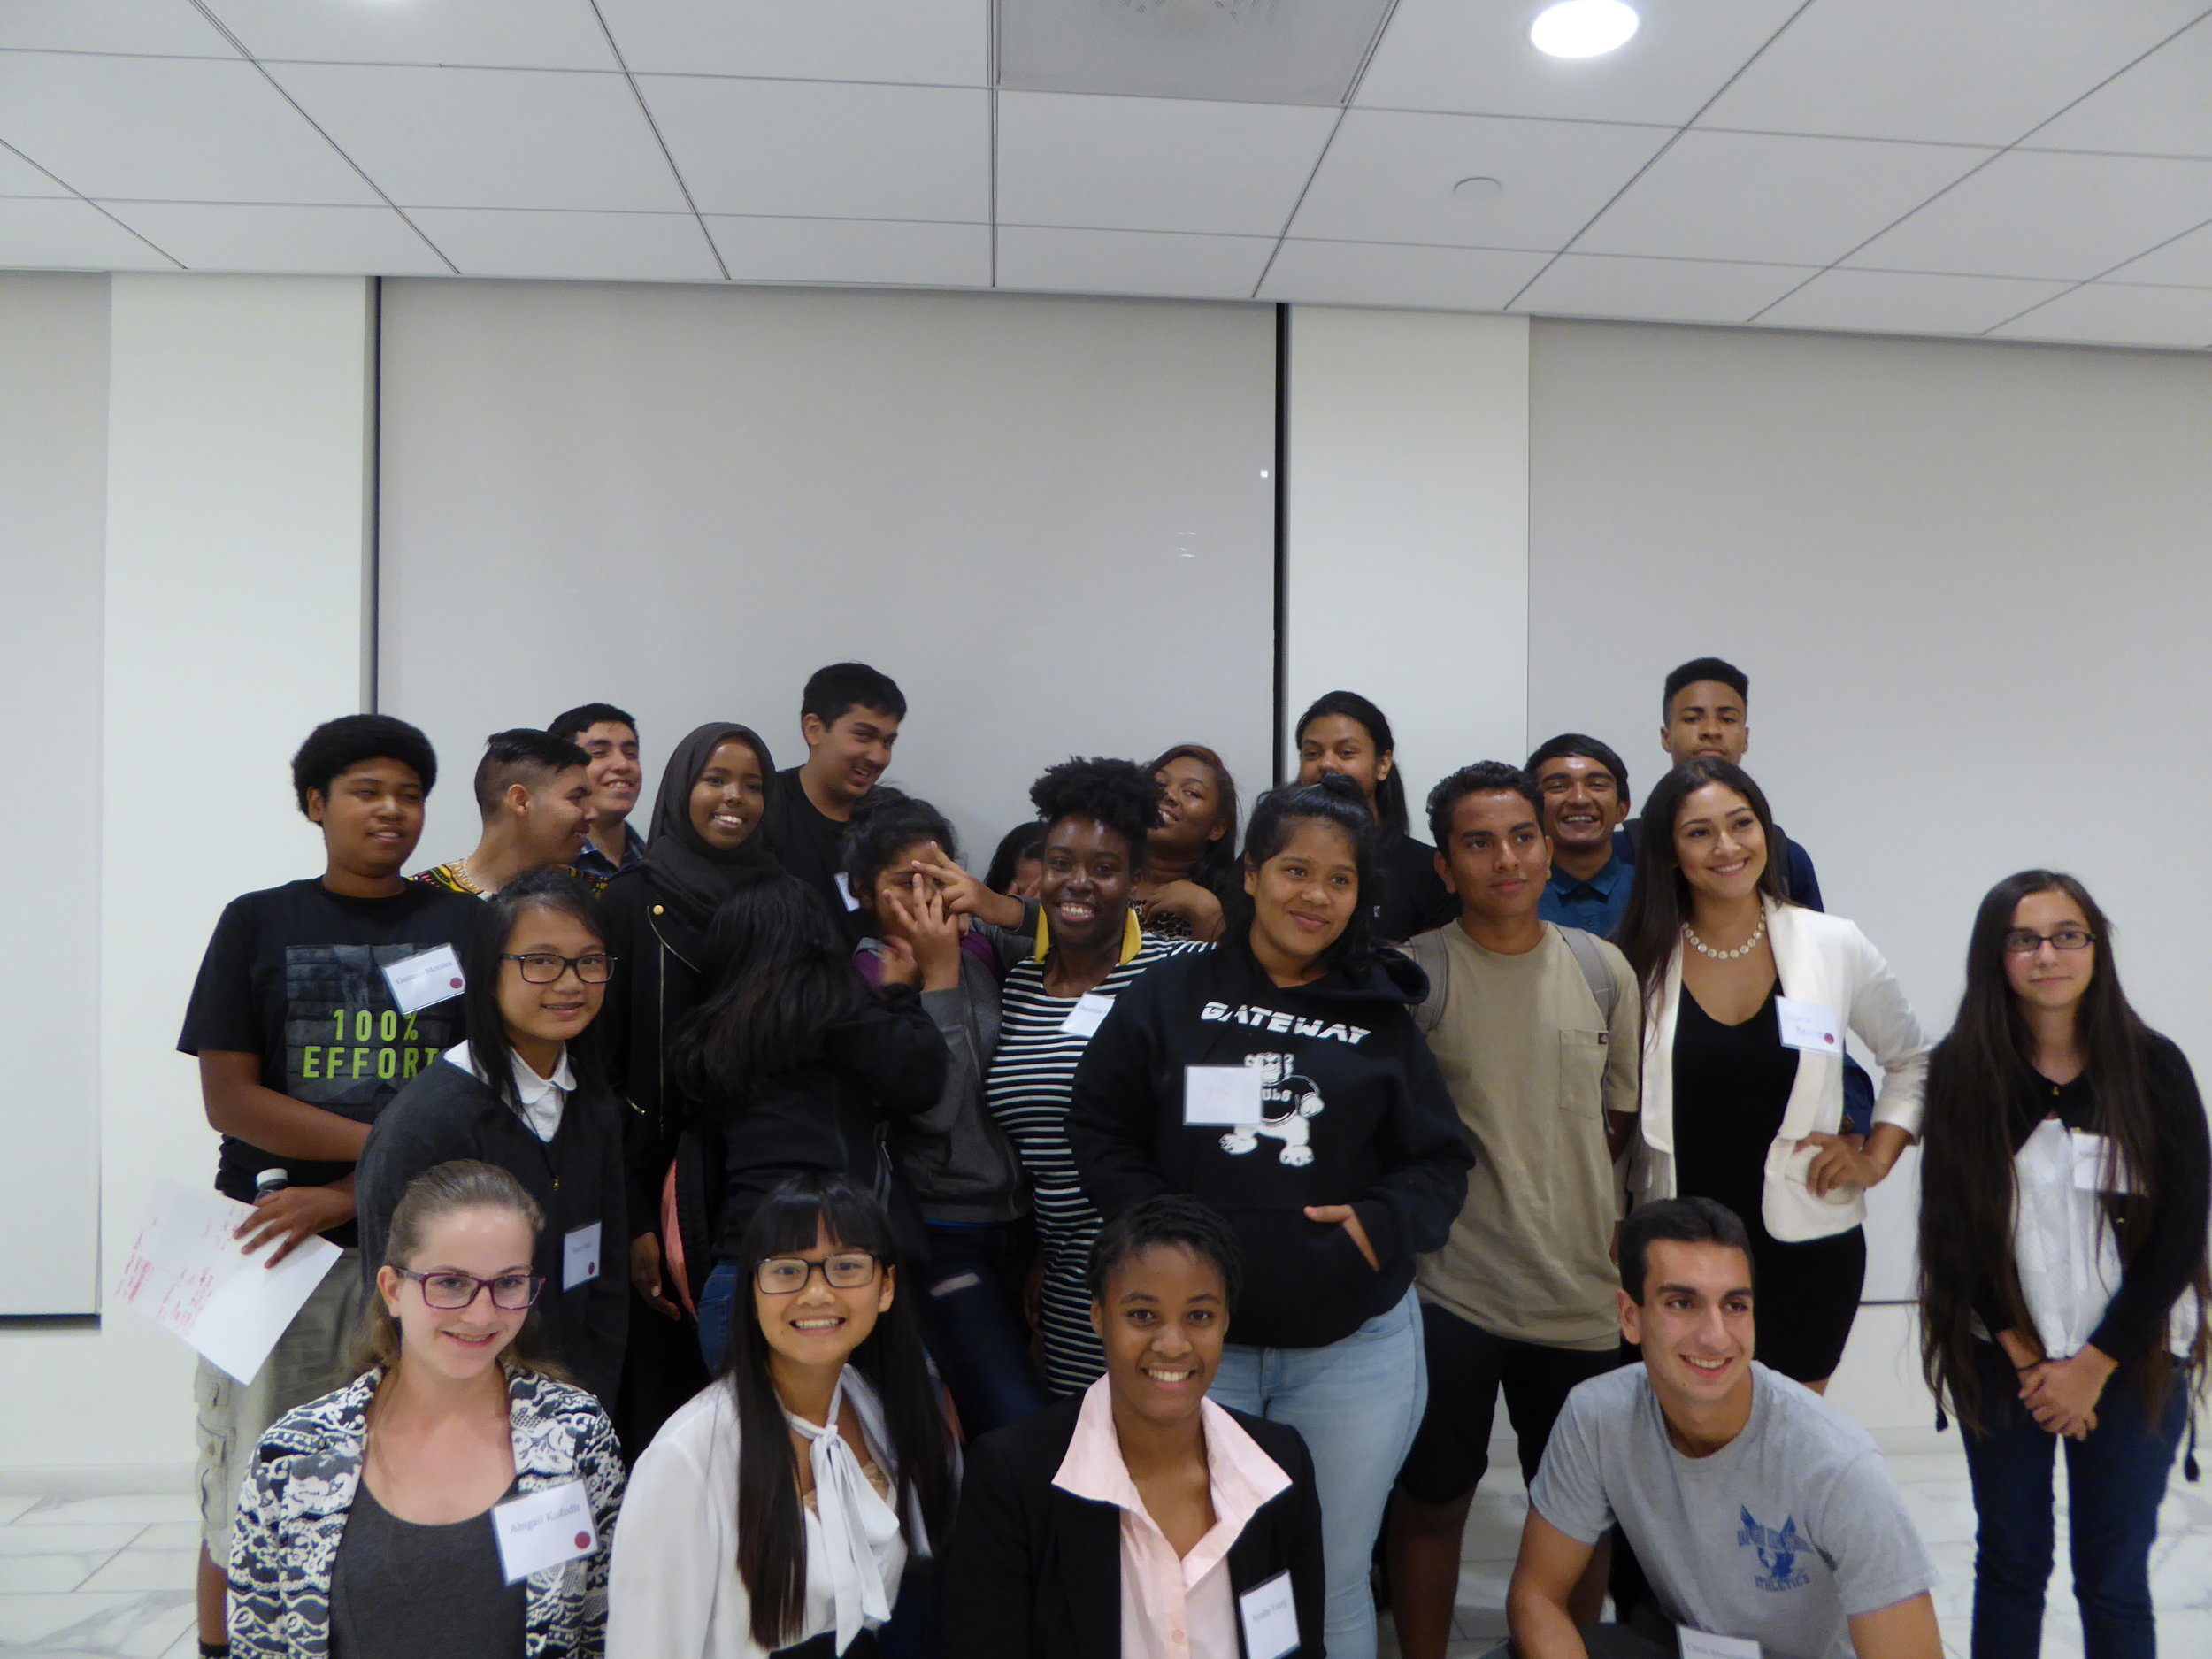 SVUDL students attending a Law Firm Career Day event